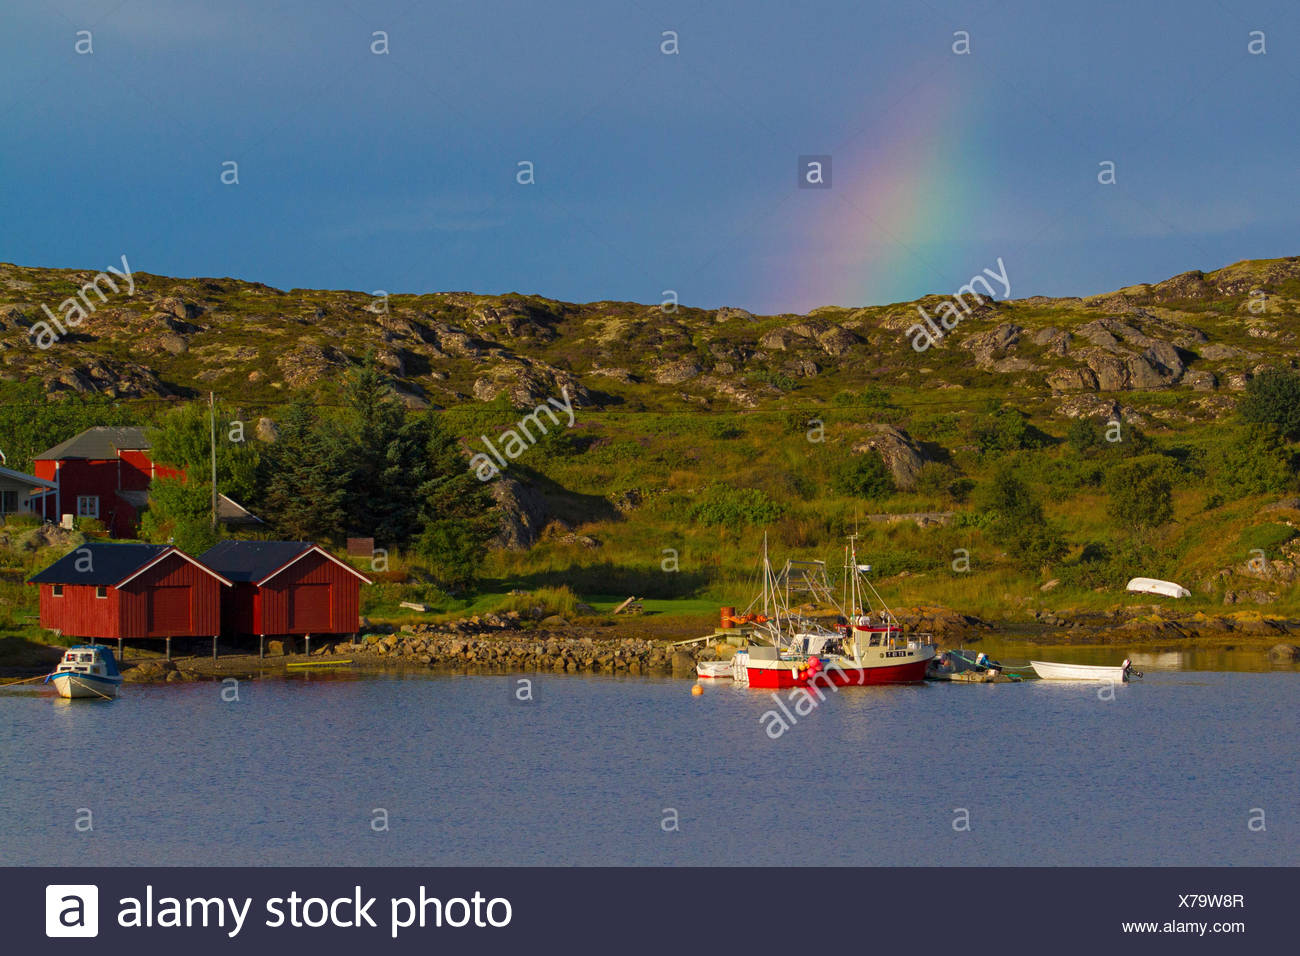 rainbow over fishing boats in a fjord, Norway, Hitra - Stock Image